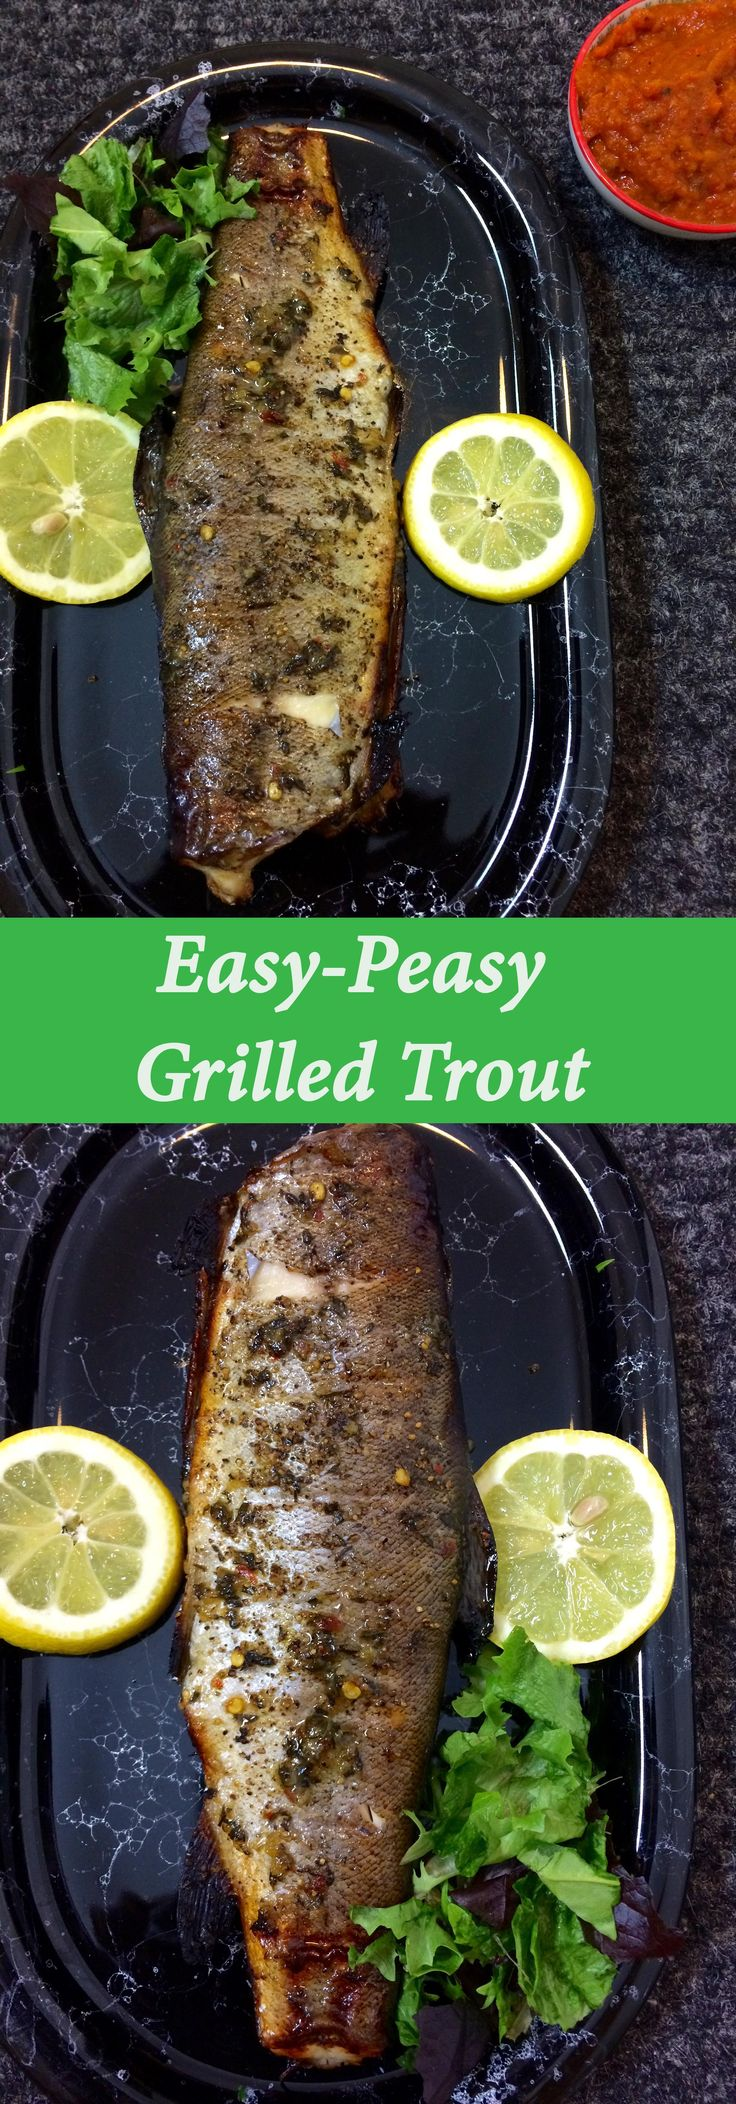 A herbed and spicy grilled trout recipe that's bound to become your go-to fish recipe. Minimal fuss recipe and ready in under 20 minutes. Both gluten-free and dairy-free. Afro-fusion food blog | African food blog.